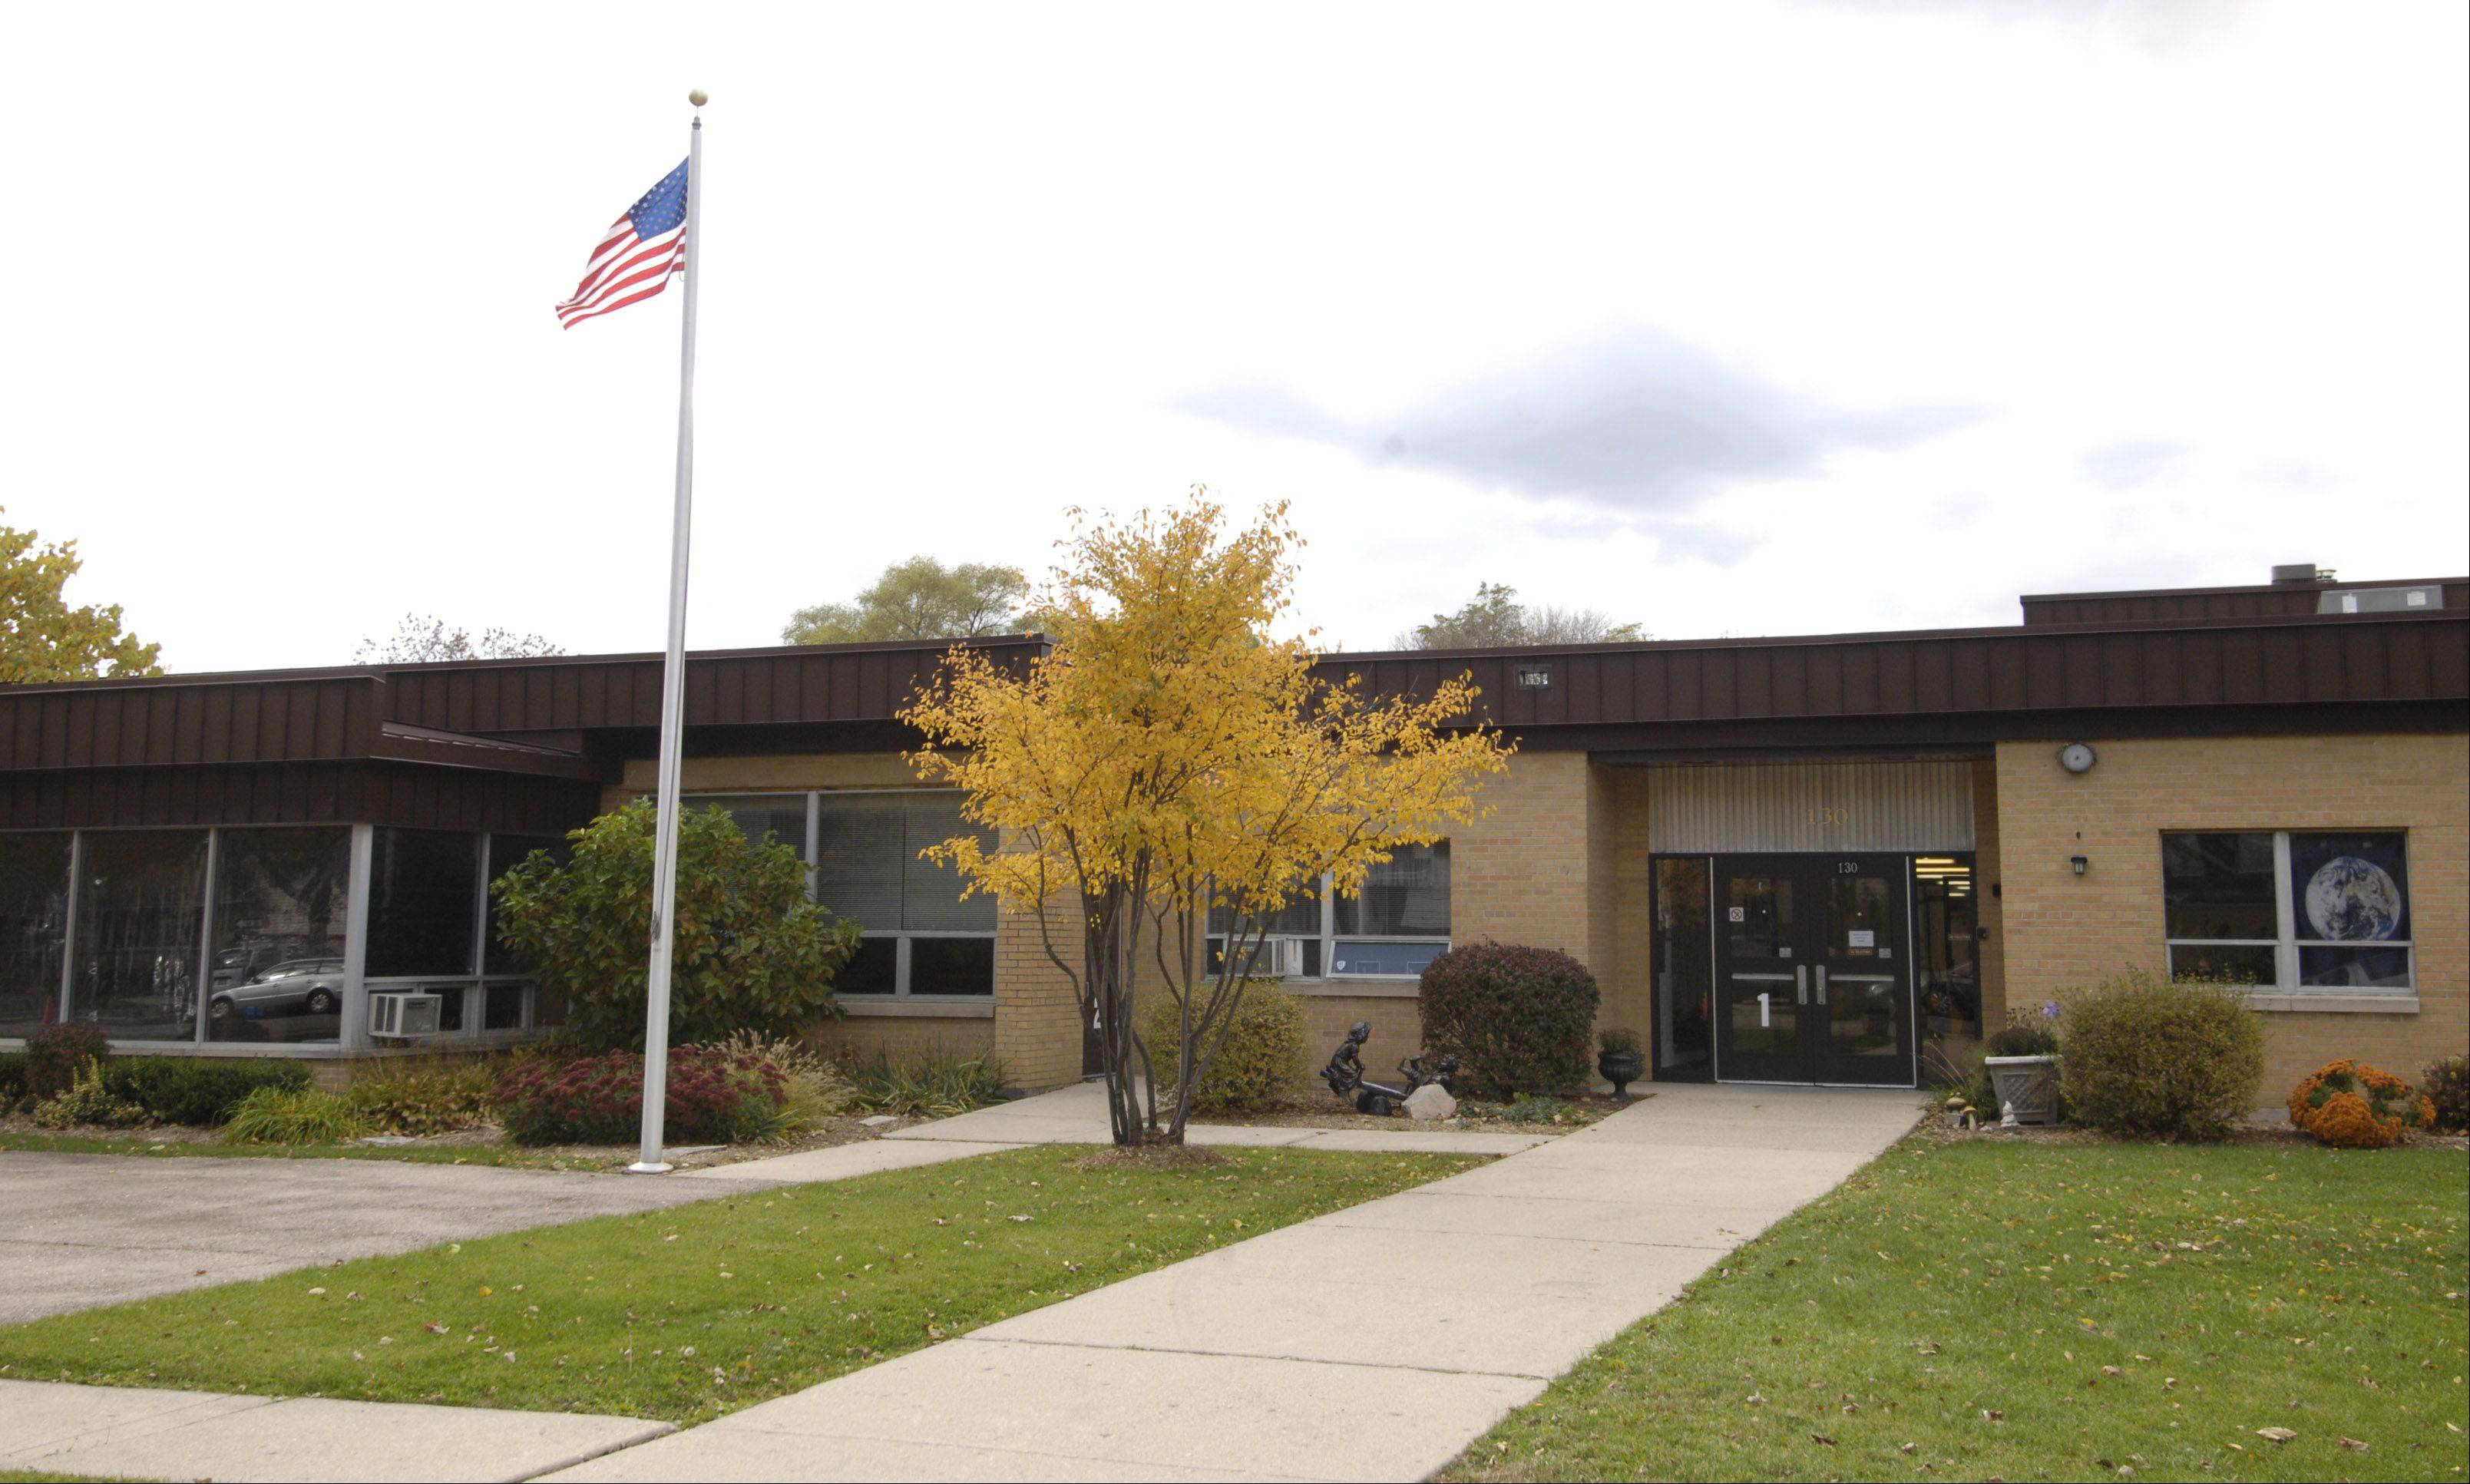 Voters in Wheaton Warrenville Unit District 200 may get a chance to vote in April on whether to fund plans to replace the aging Jefferson Early Childhood Center with a new building for the district's youngest learners.